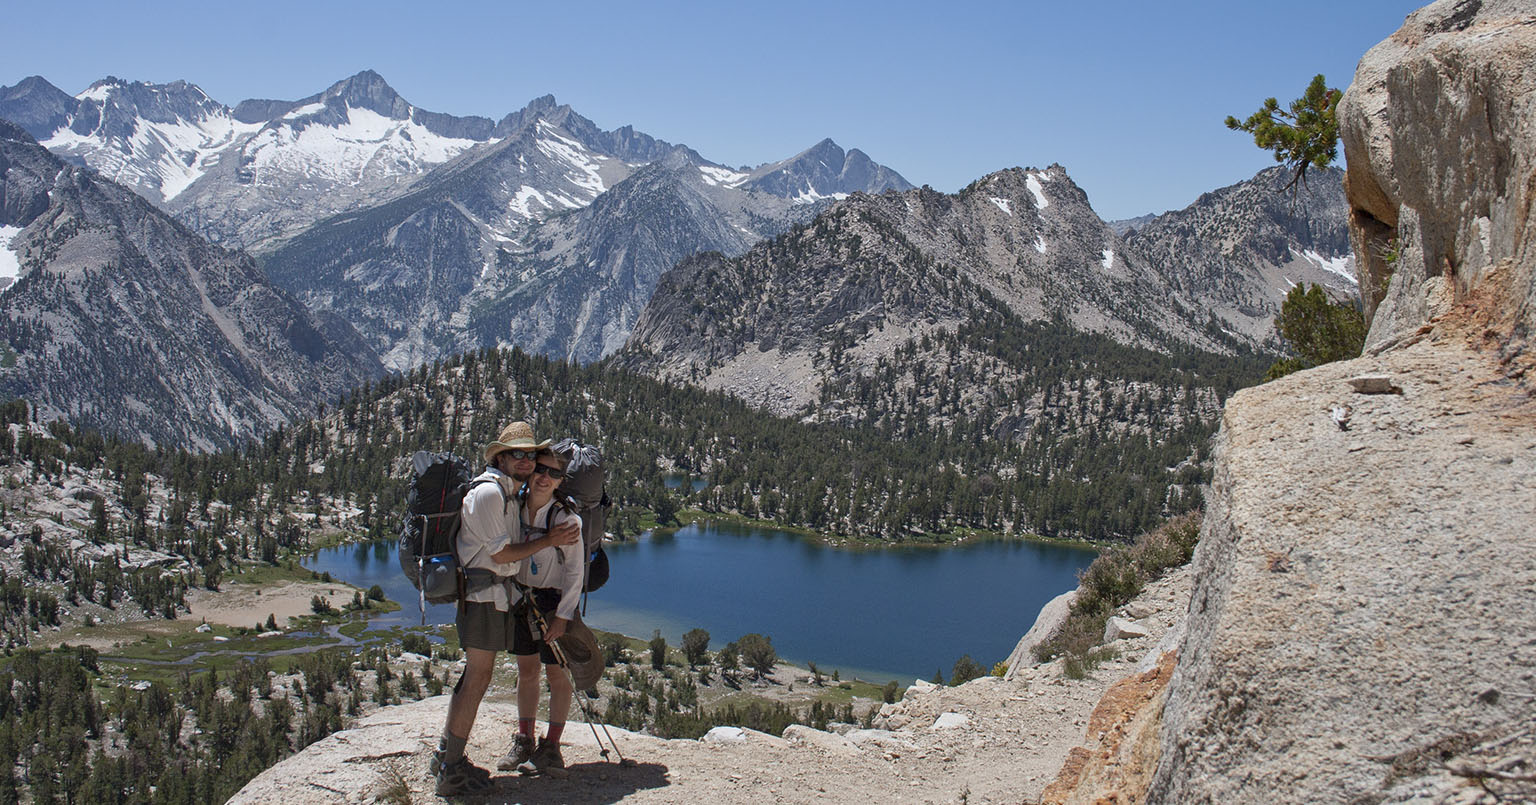 On the high trail in Kearsarge Basin, Bullfrog Lake below us